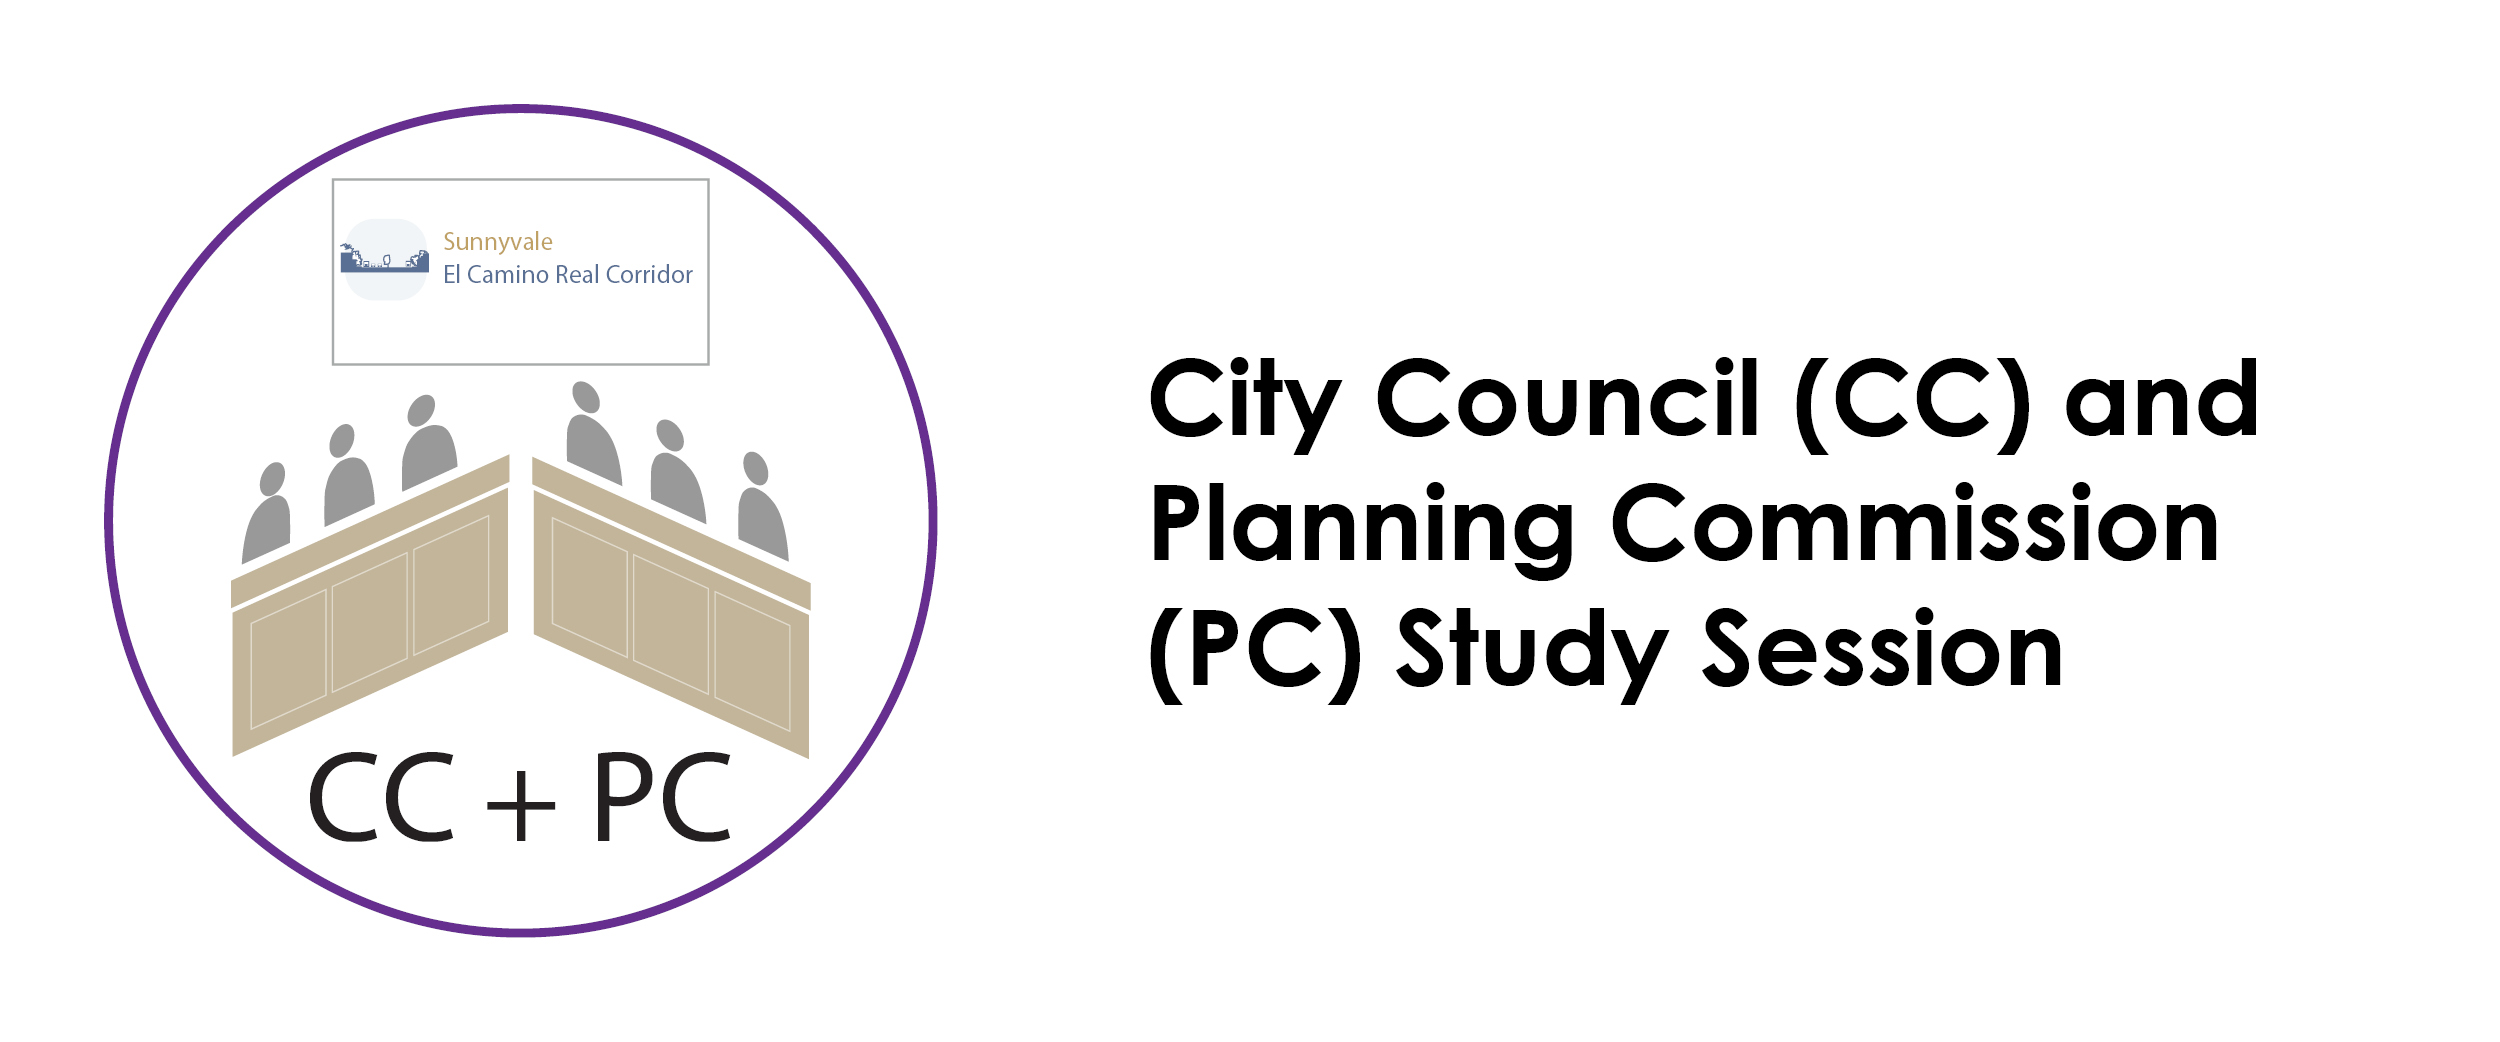 City Council and Planning Commission Study Session. Click on image to learn more.